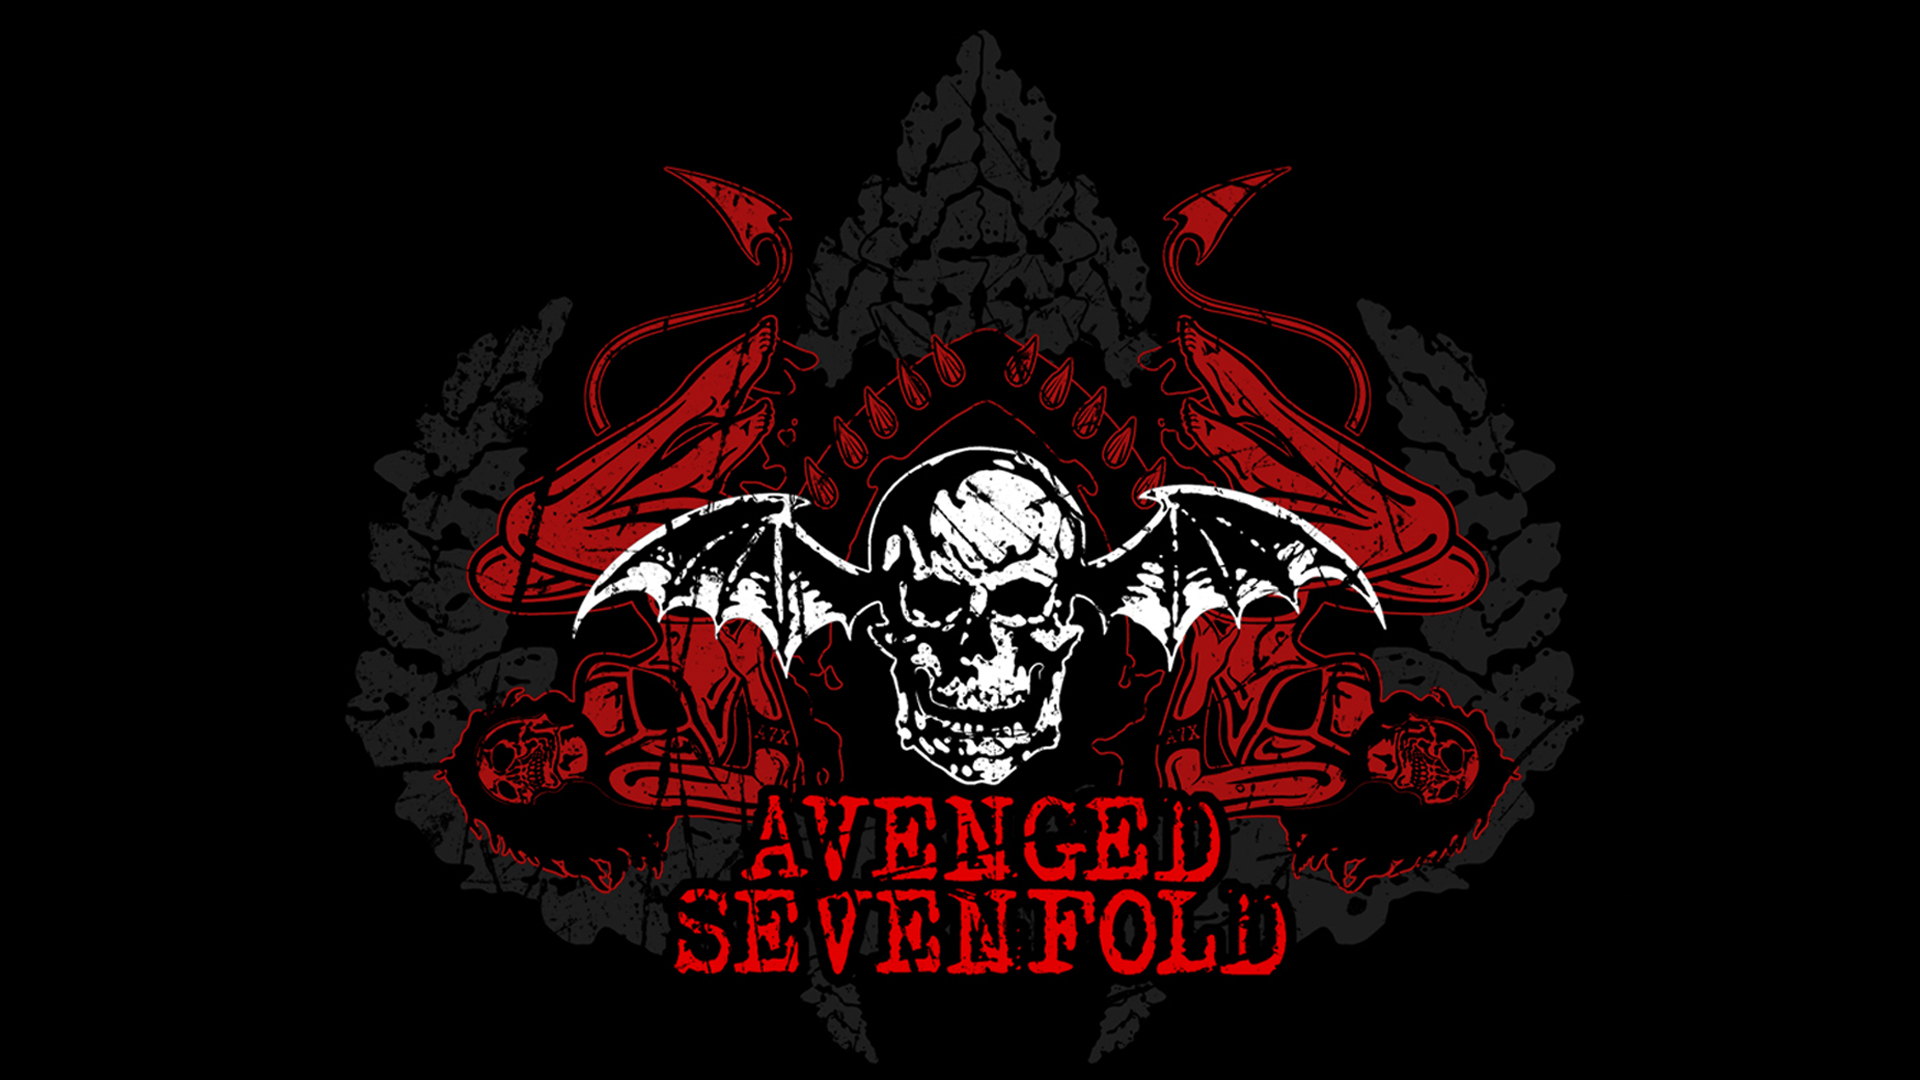 Avenged sevenfold full hd wallpaper and background image 1920x1080 music avenged sevenfold wallpaper voltagebd Images